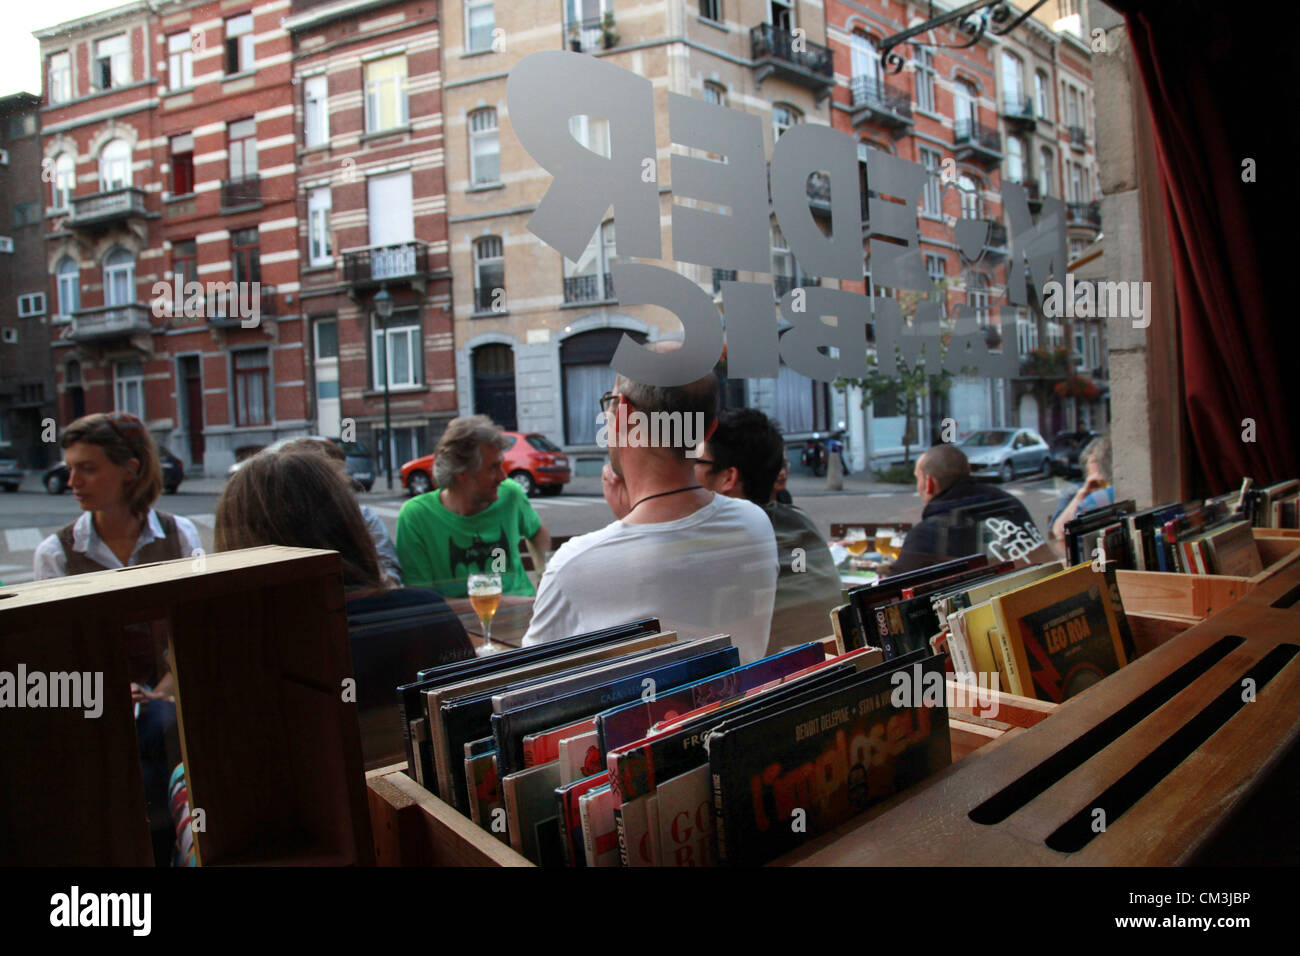 Sep. 10, 2012 - Brussels, Belgium - Patrons enjoy a beer in the famous bar Chez Moeder Lambic, near the impressive - Stock Image